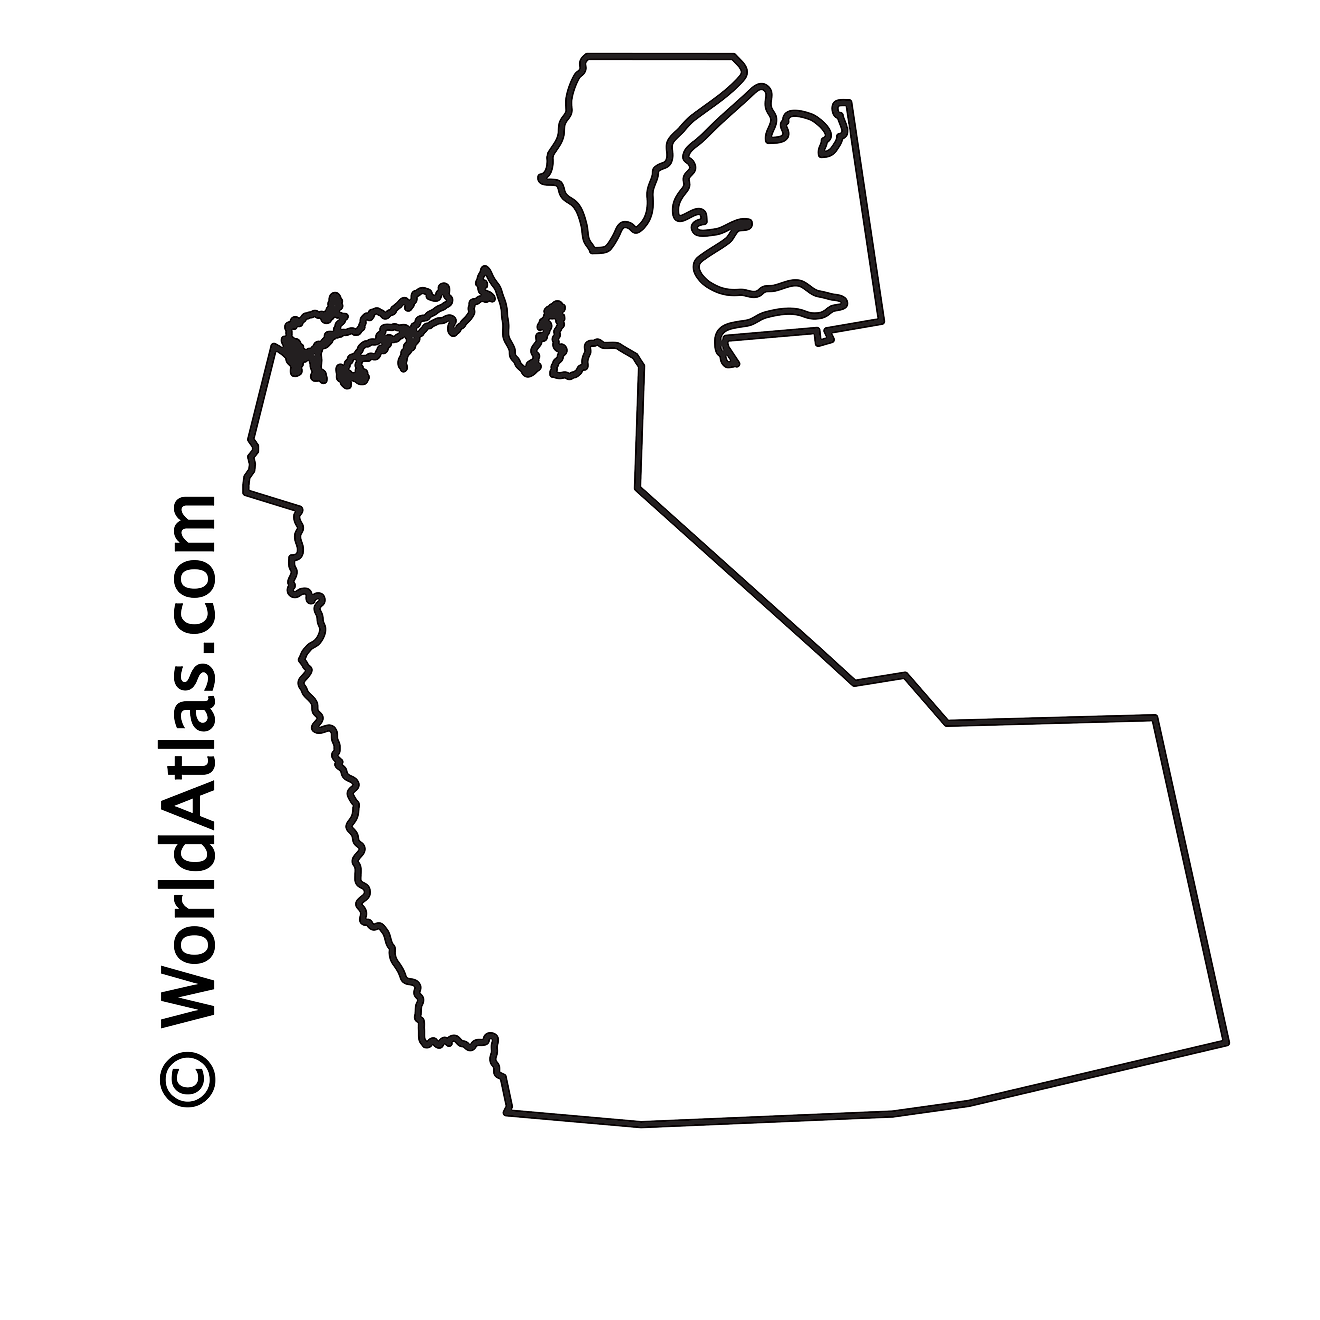 Blank Outline Map of Northwest Territories